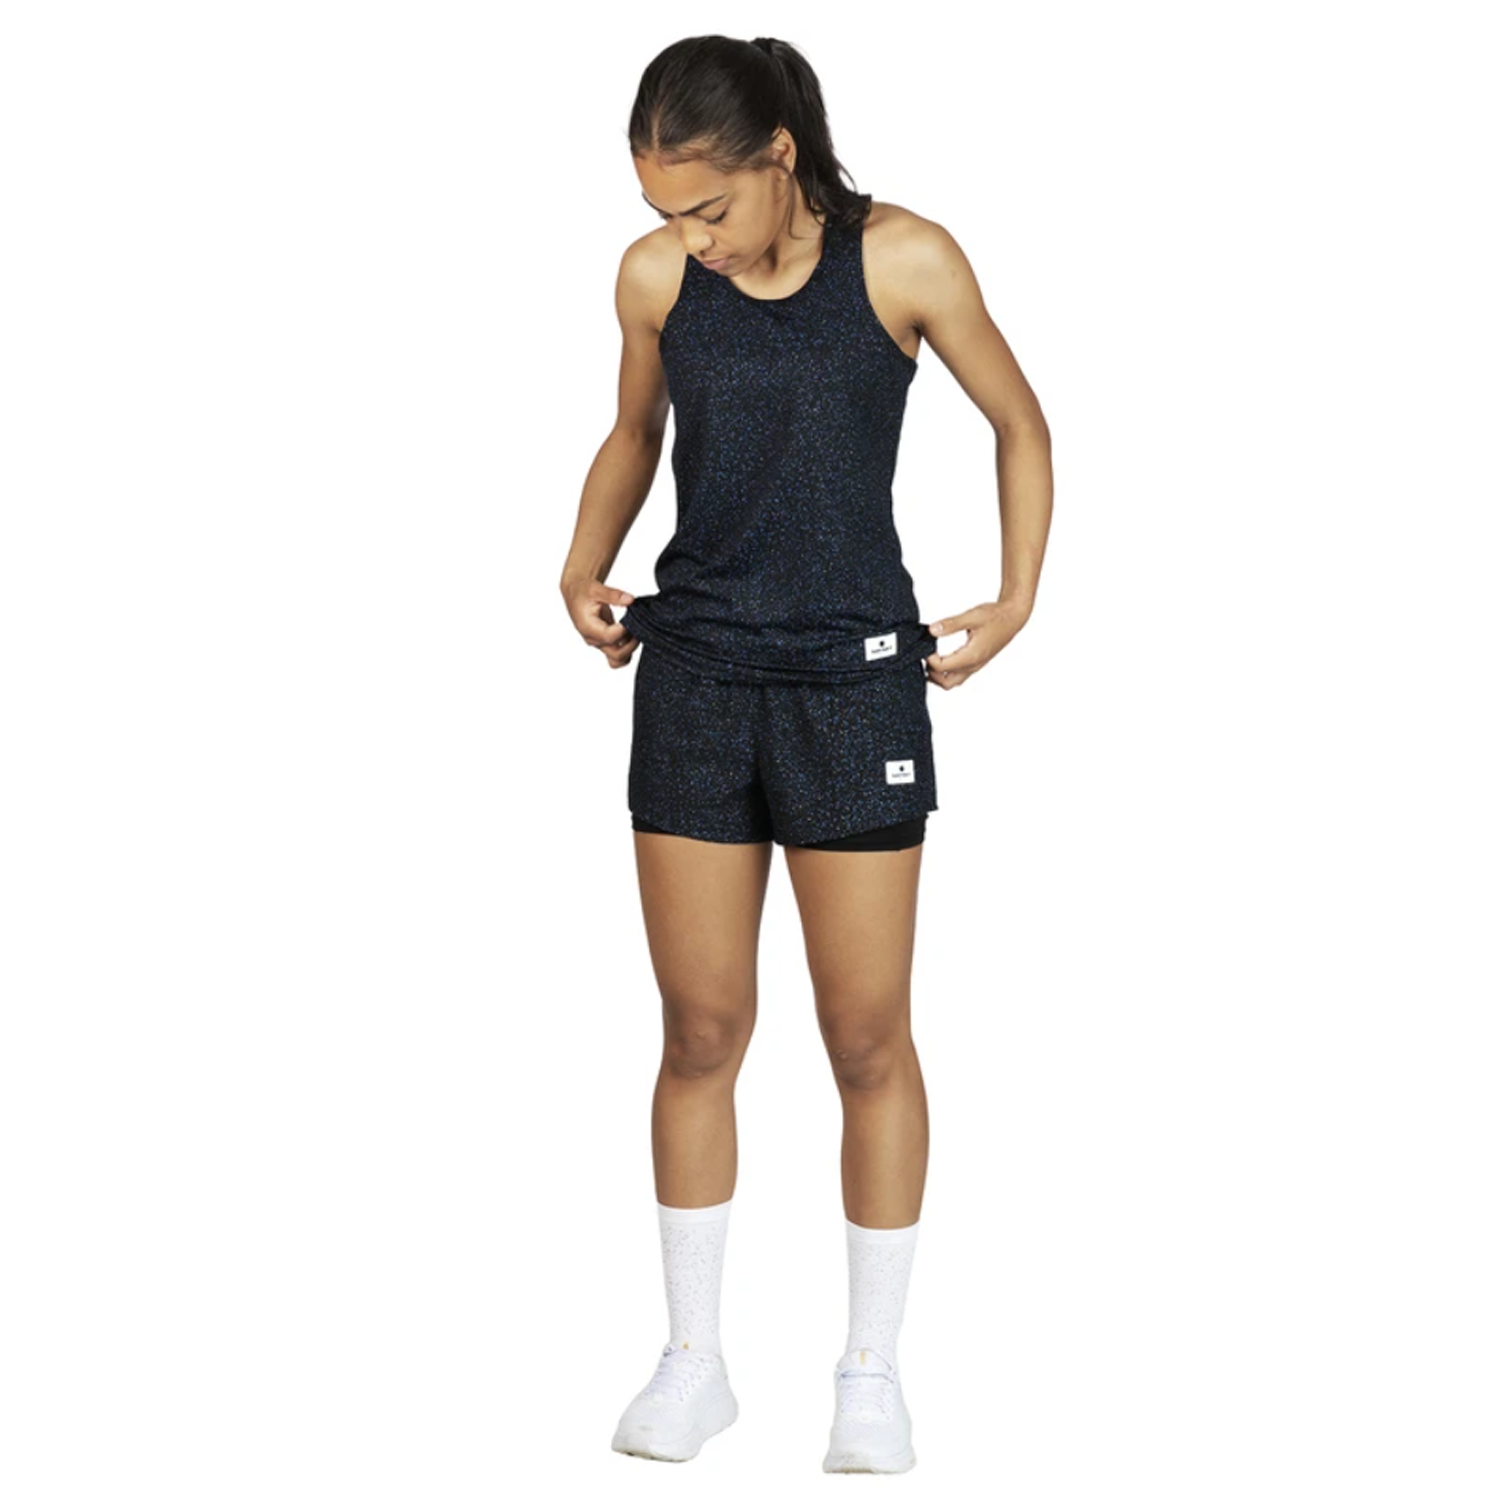 saysky women's running shorts that is light and comfortable in black color